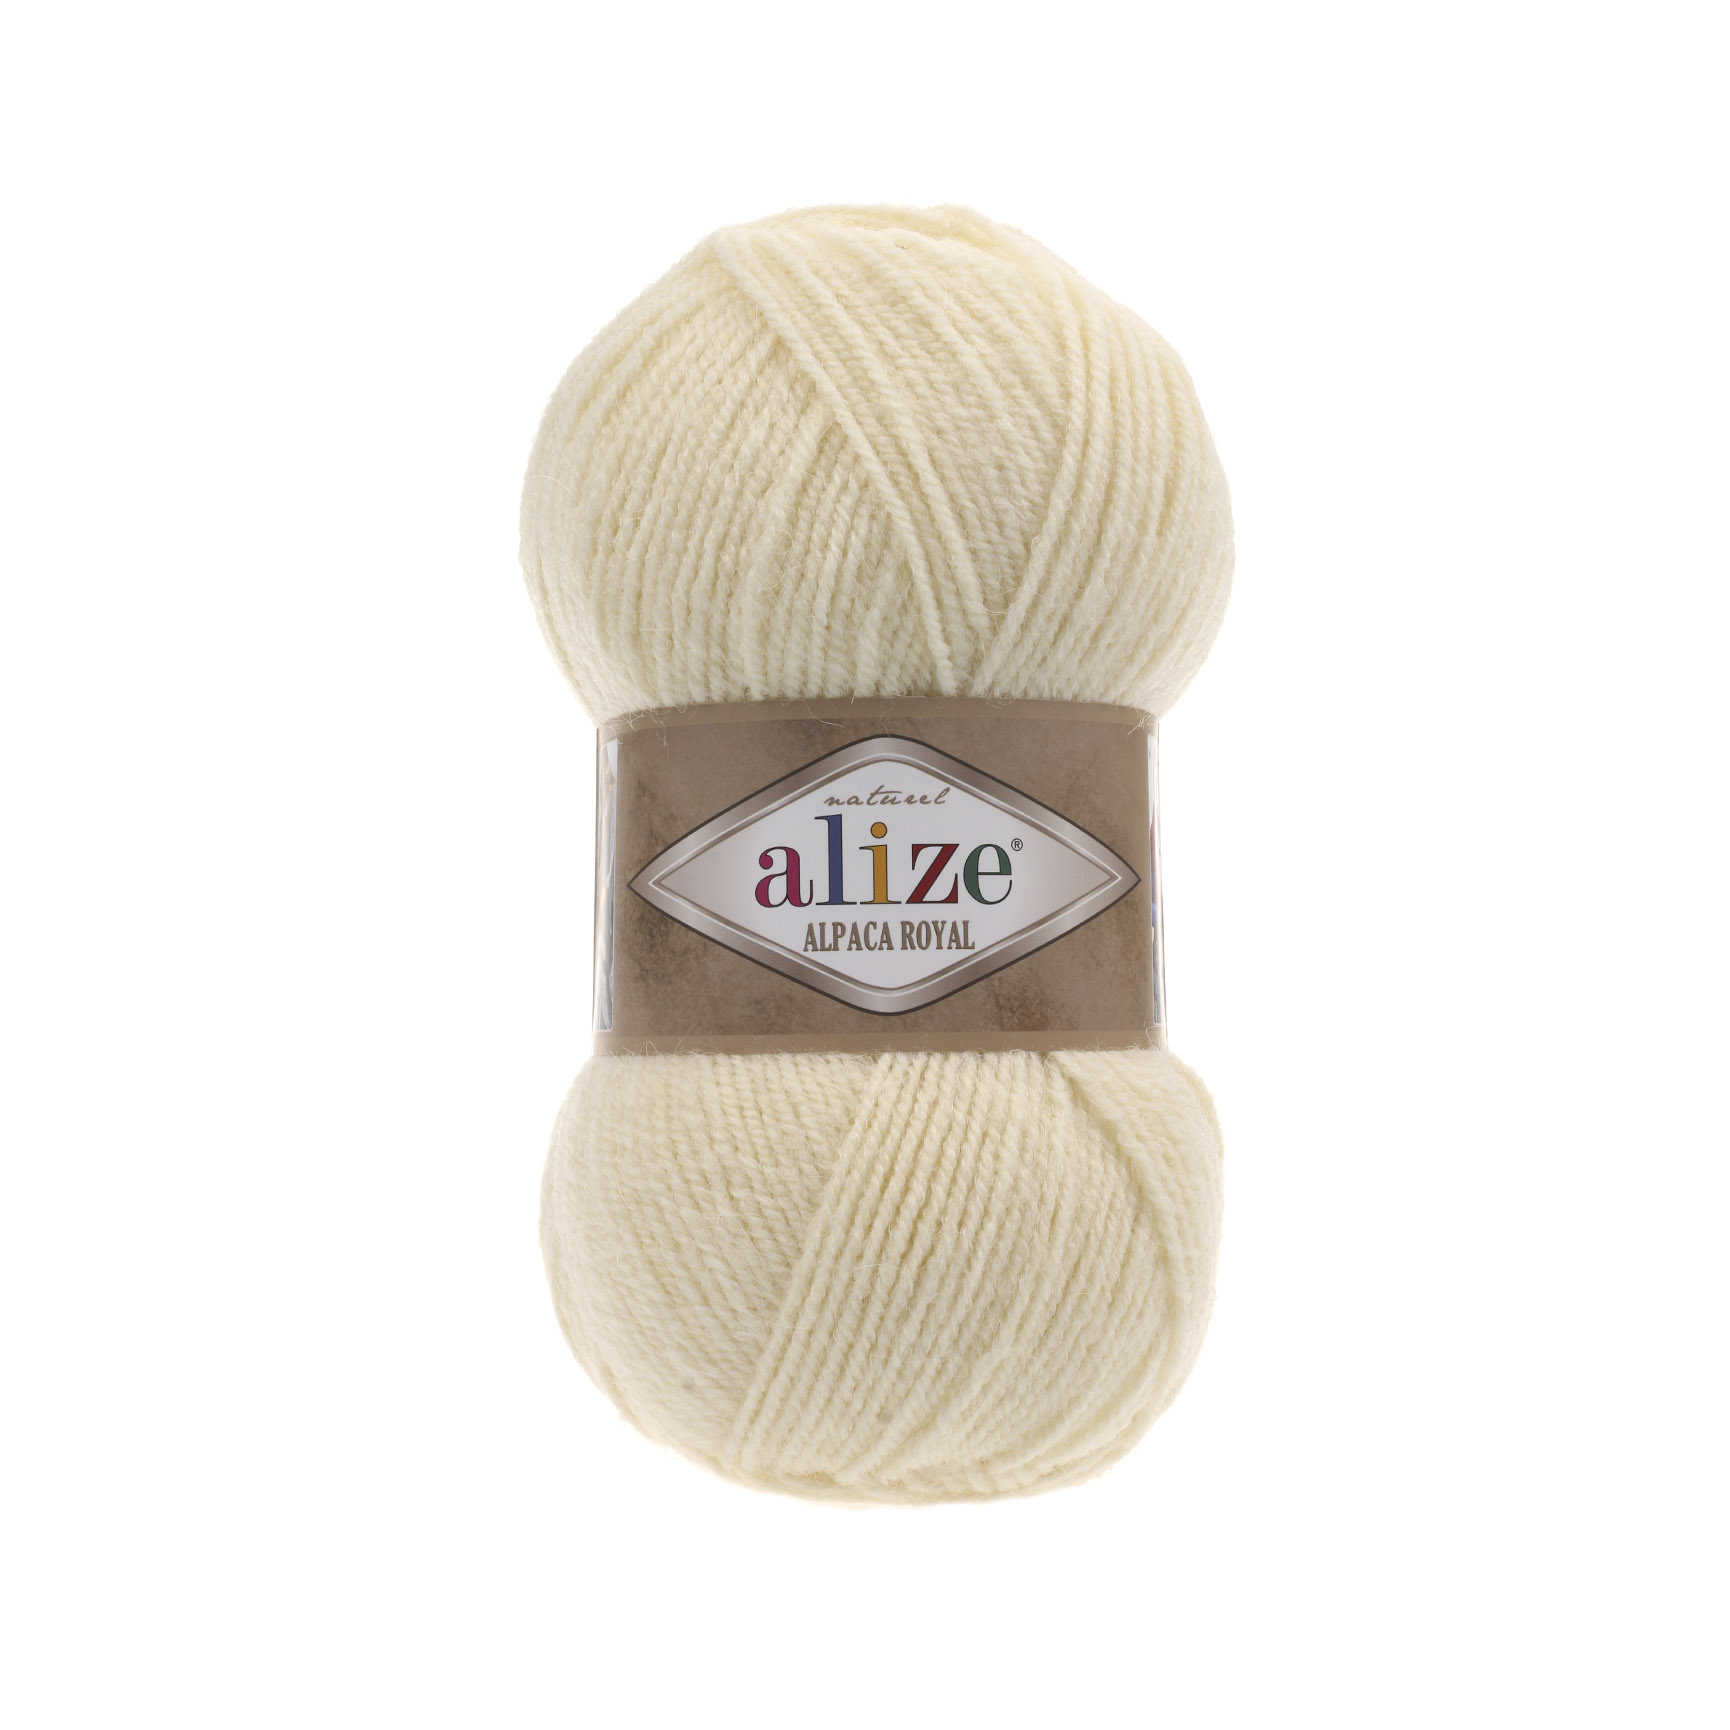 aliza alpaca royal